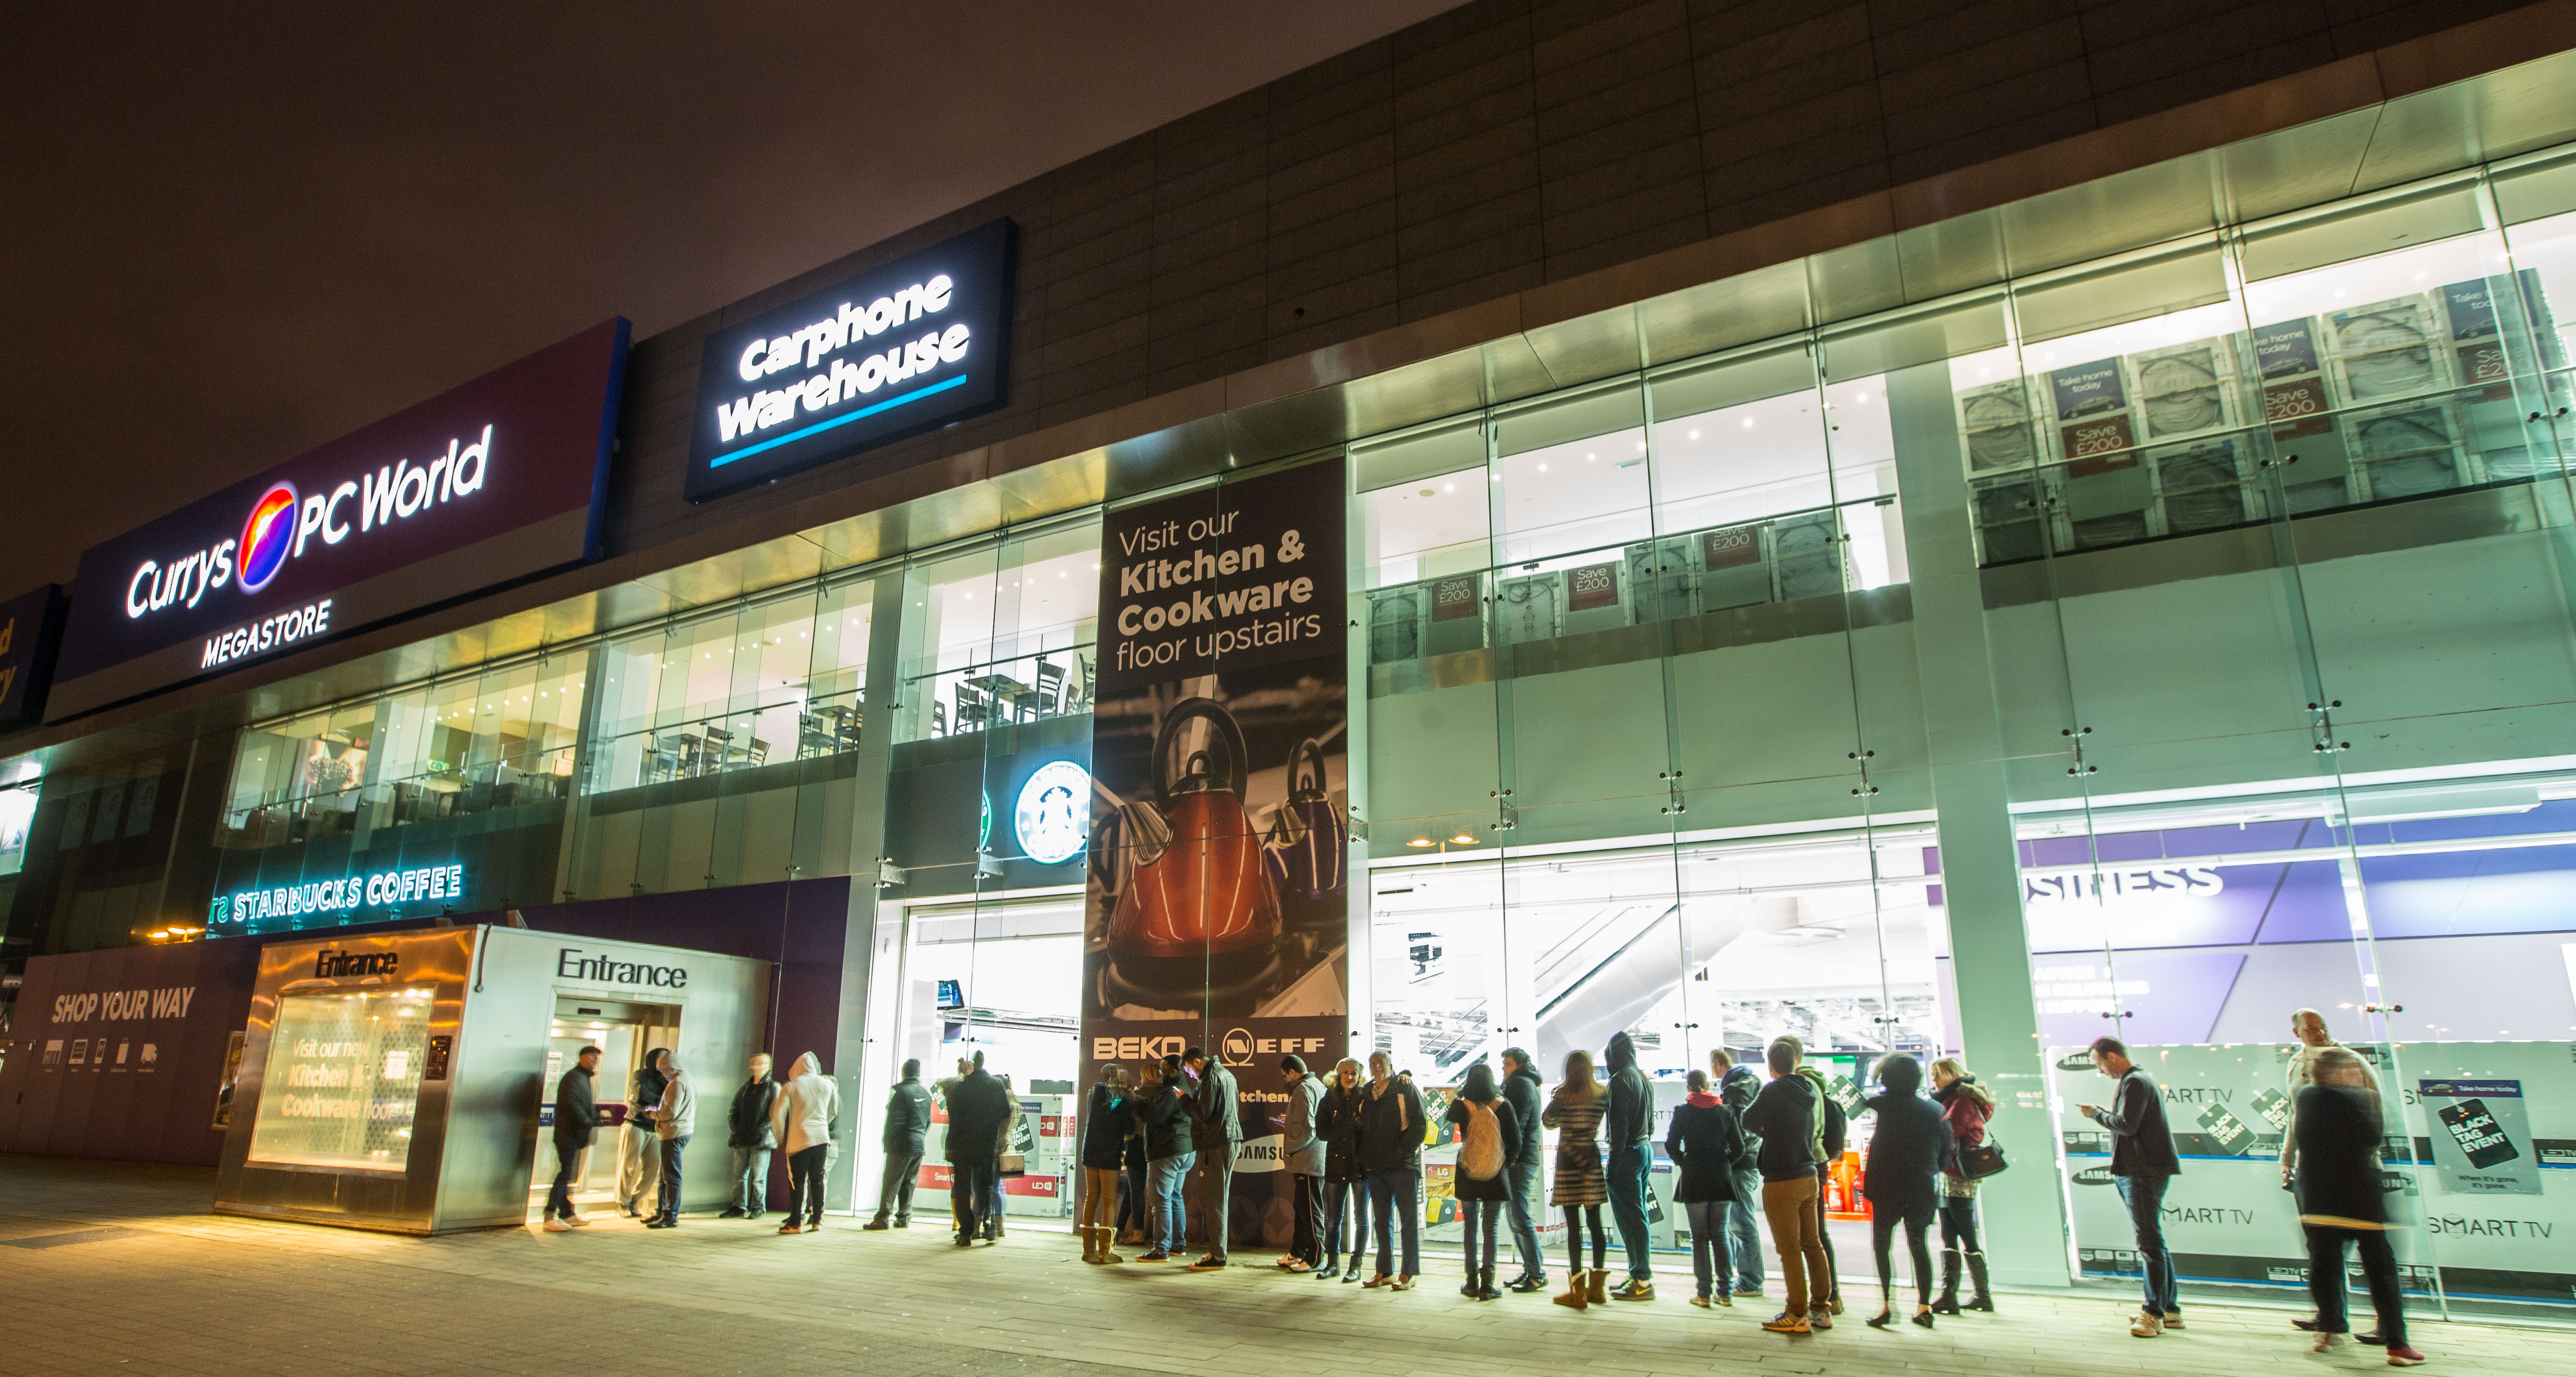 Customer queued for Currys PC World before the sun was up this morning, ....jpg